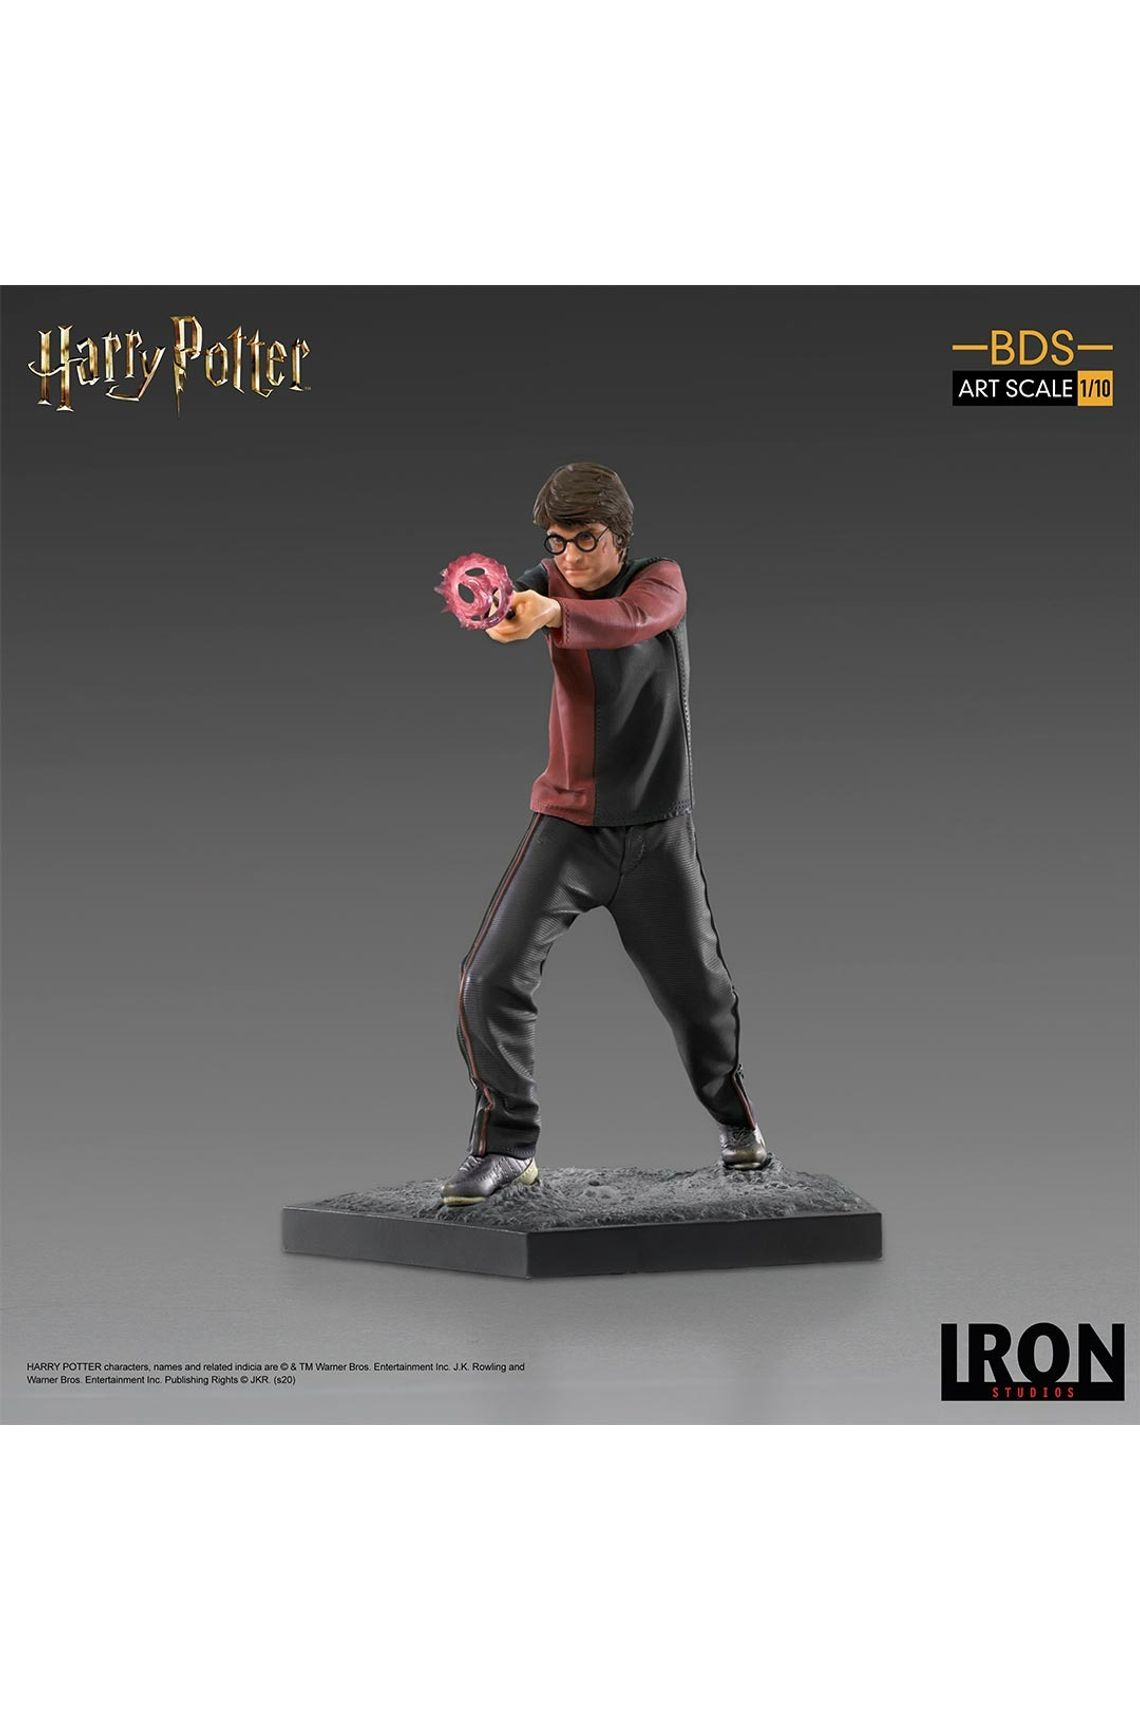 Estátua Harry Potter: Harry Potter Escala 1/10 - Iron Studios